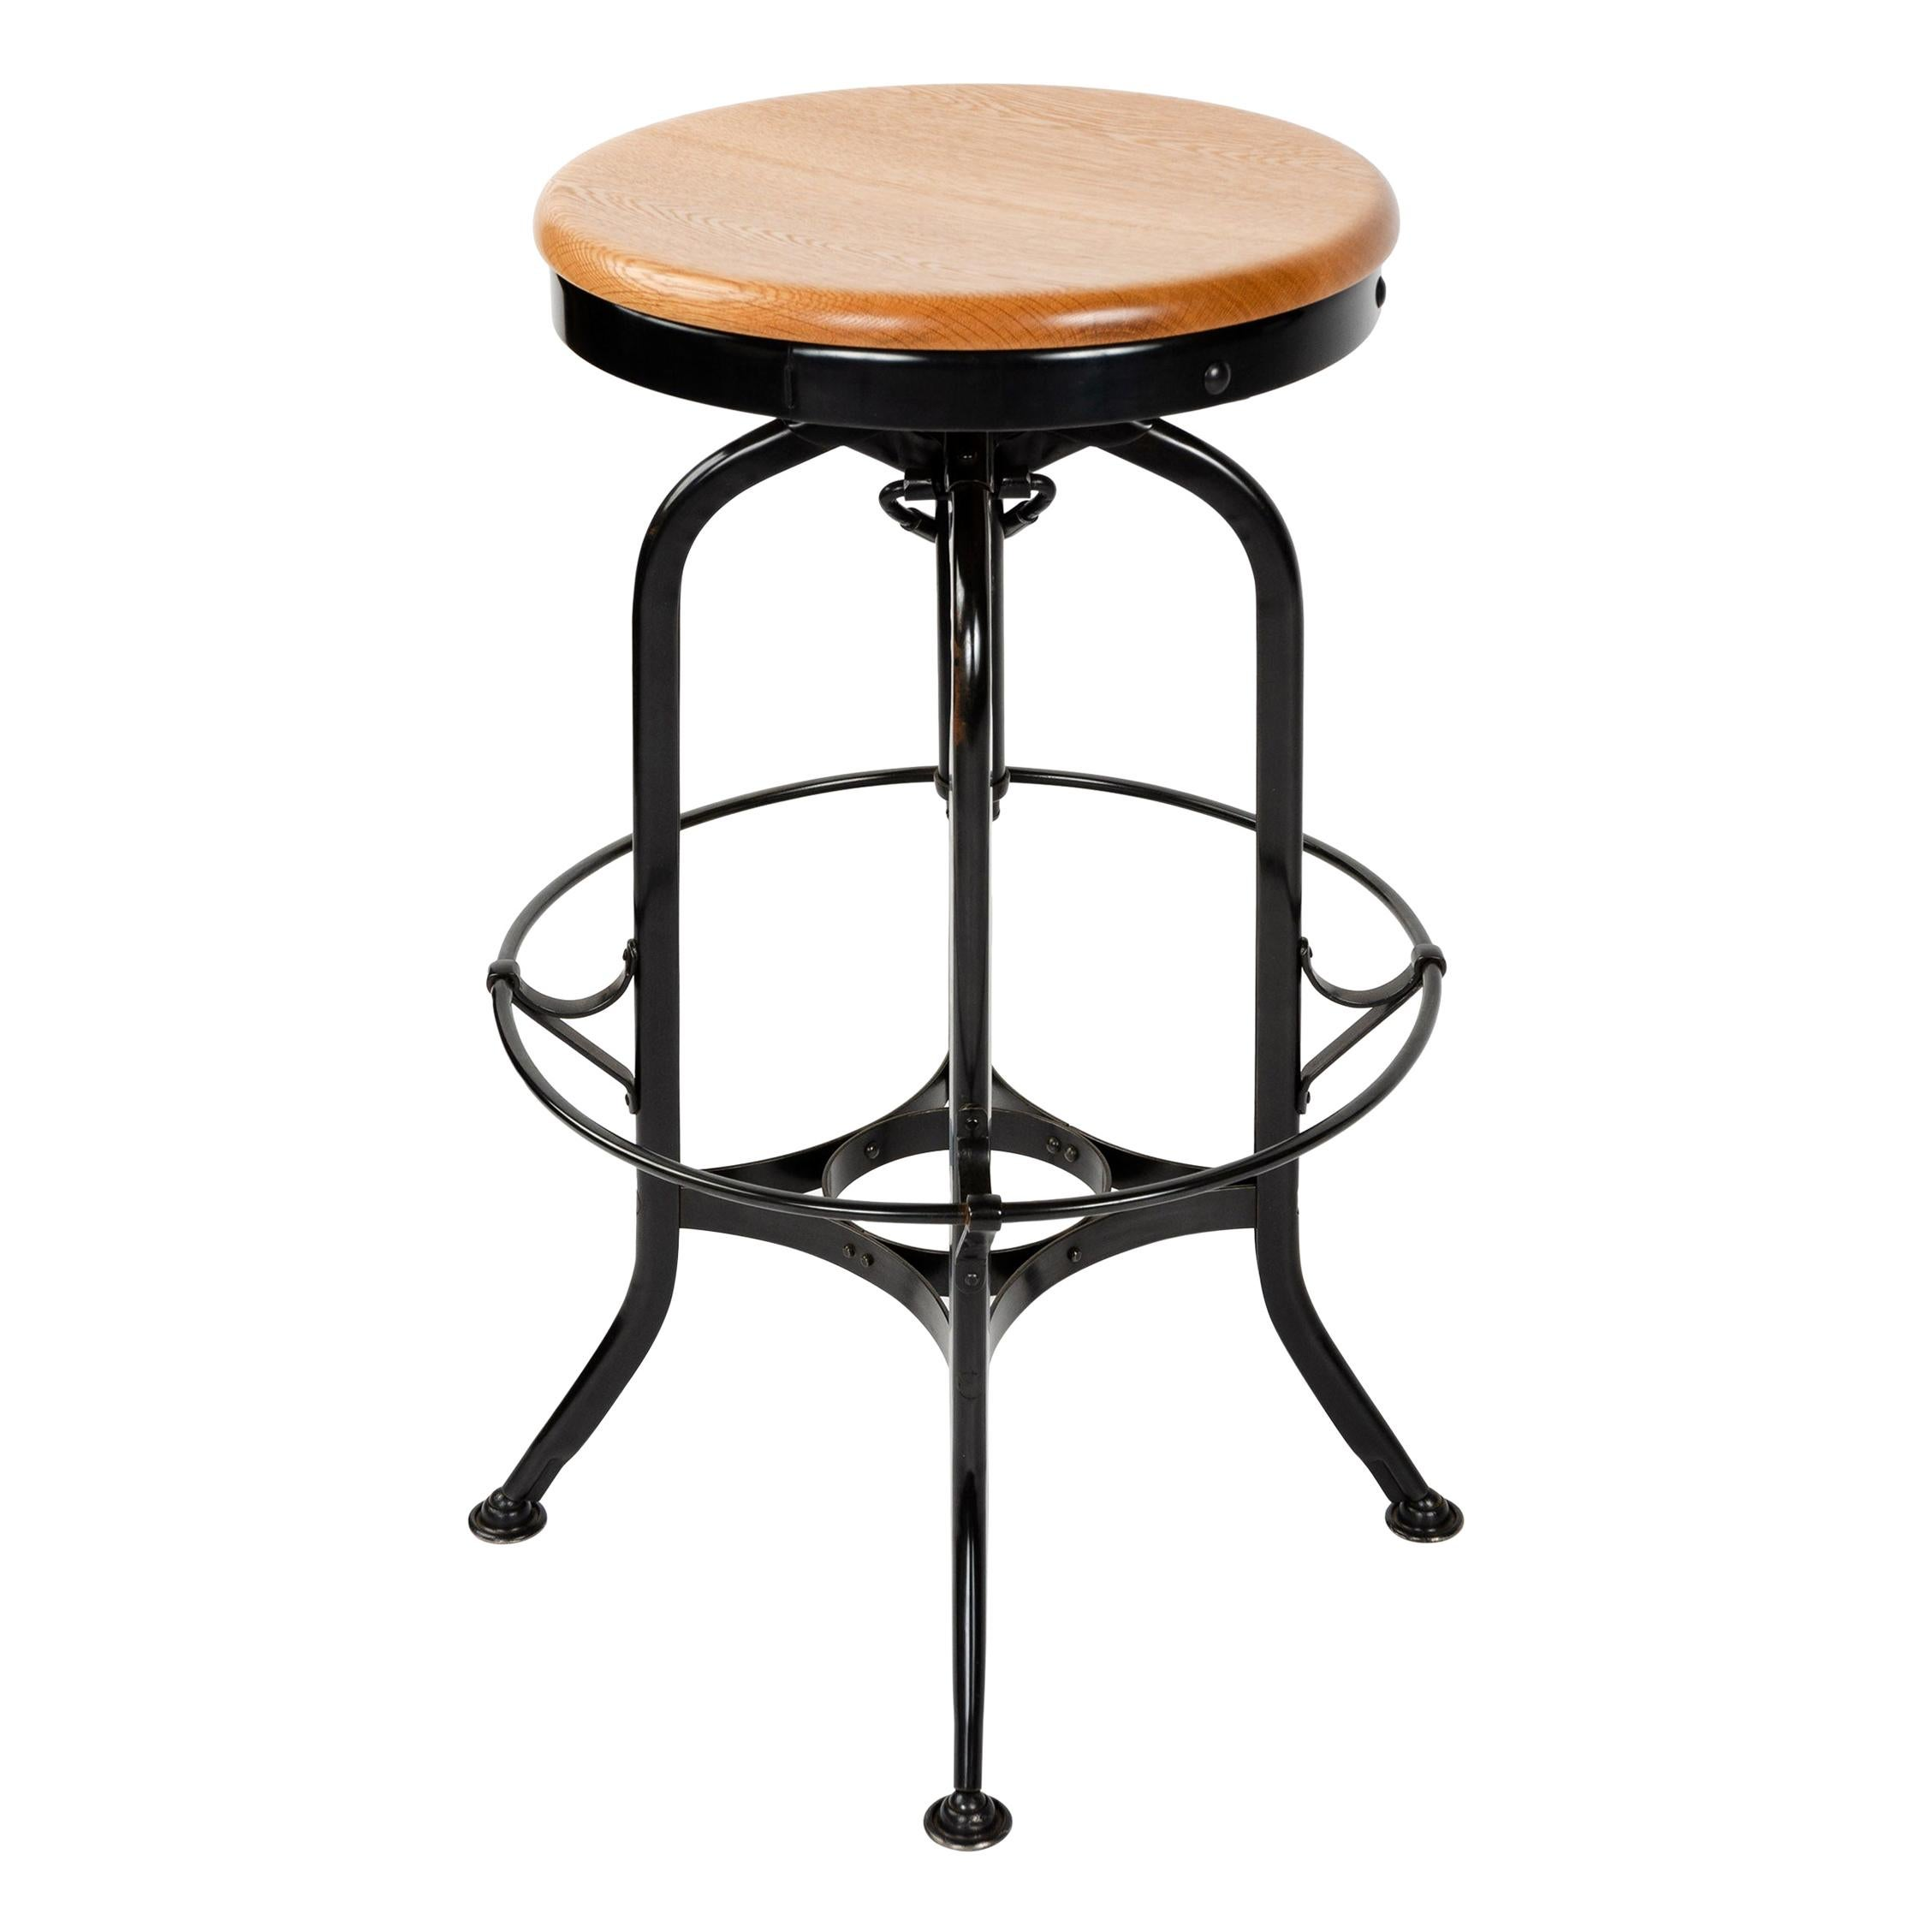 Adjustable Oak and Steel Stool by Toledo